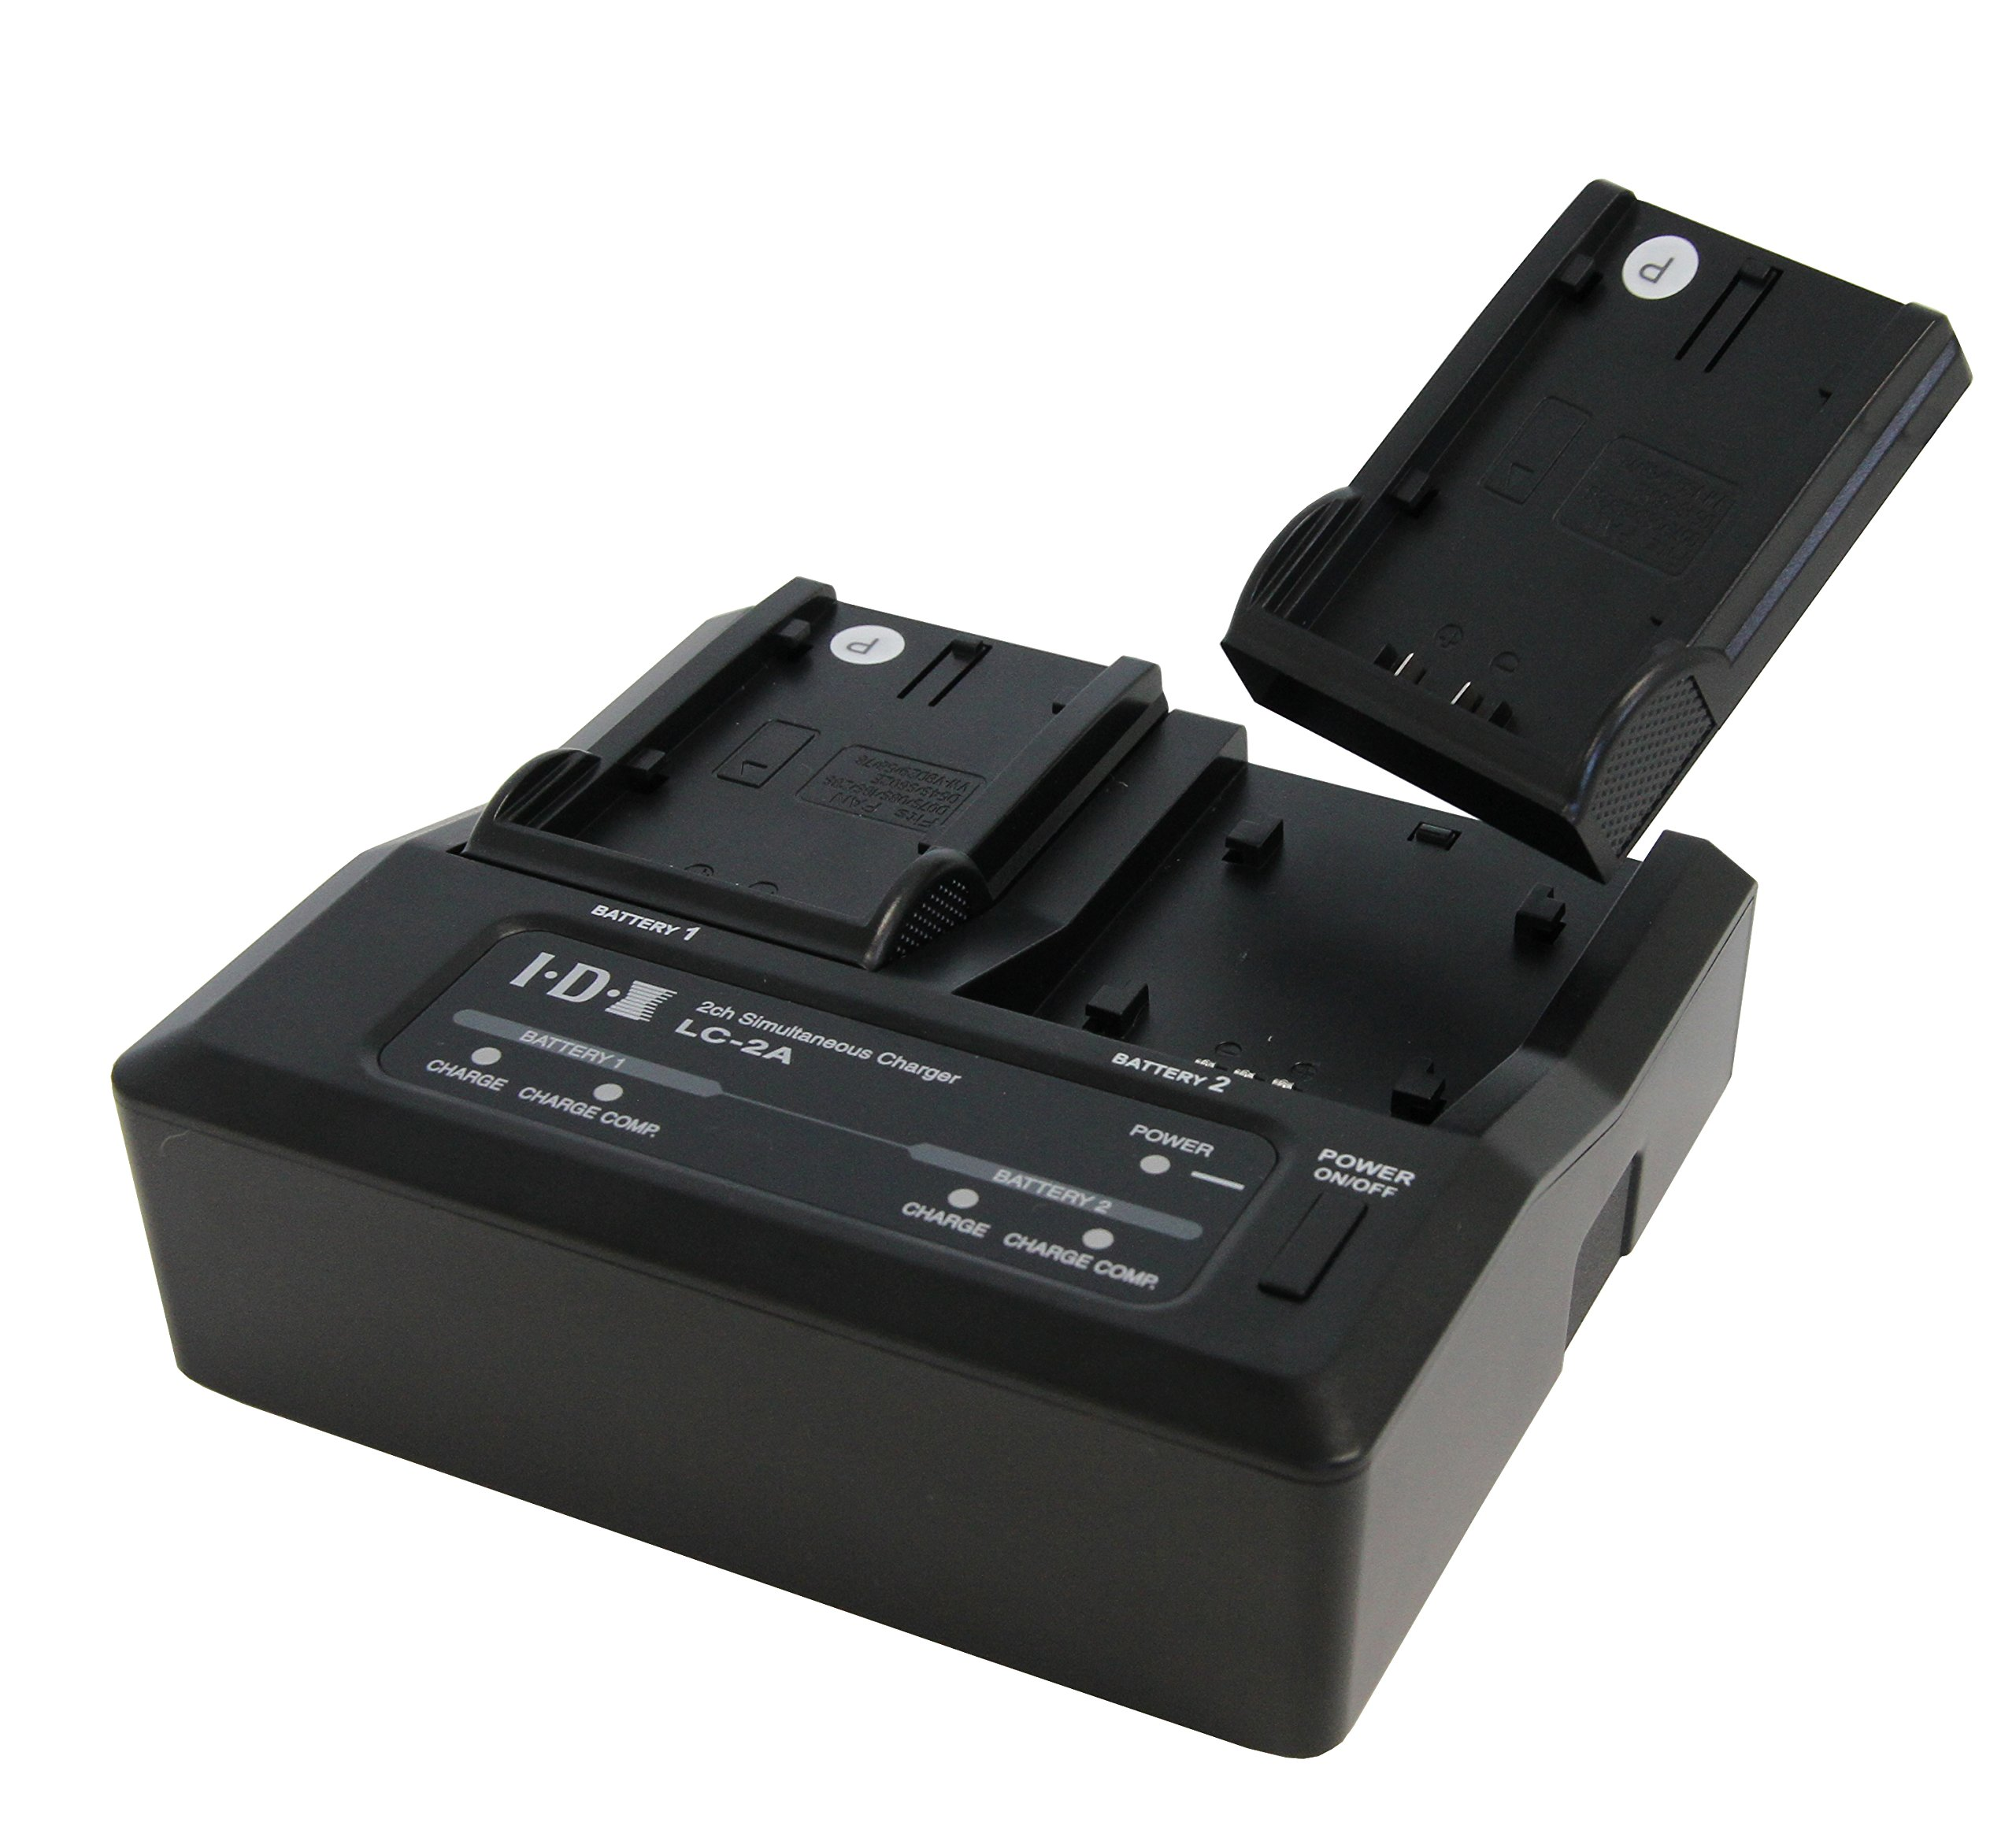 2-Channel Simultaneous Multi-Brand 7.2/7.4V Lithium Ion Battery Charger for Sony, Canon, Panasonic, & IDX Batteries by IDX